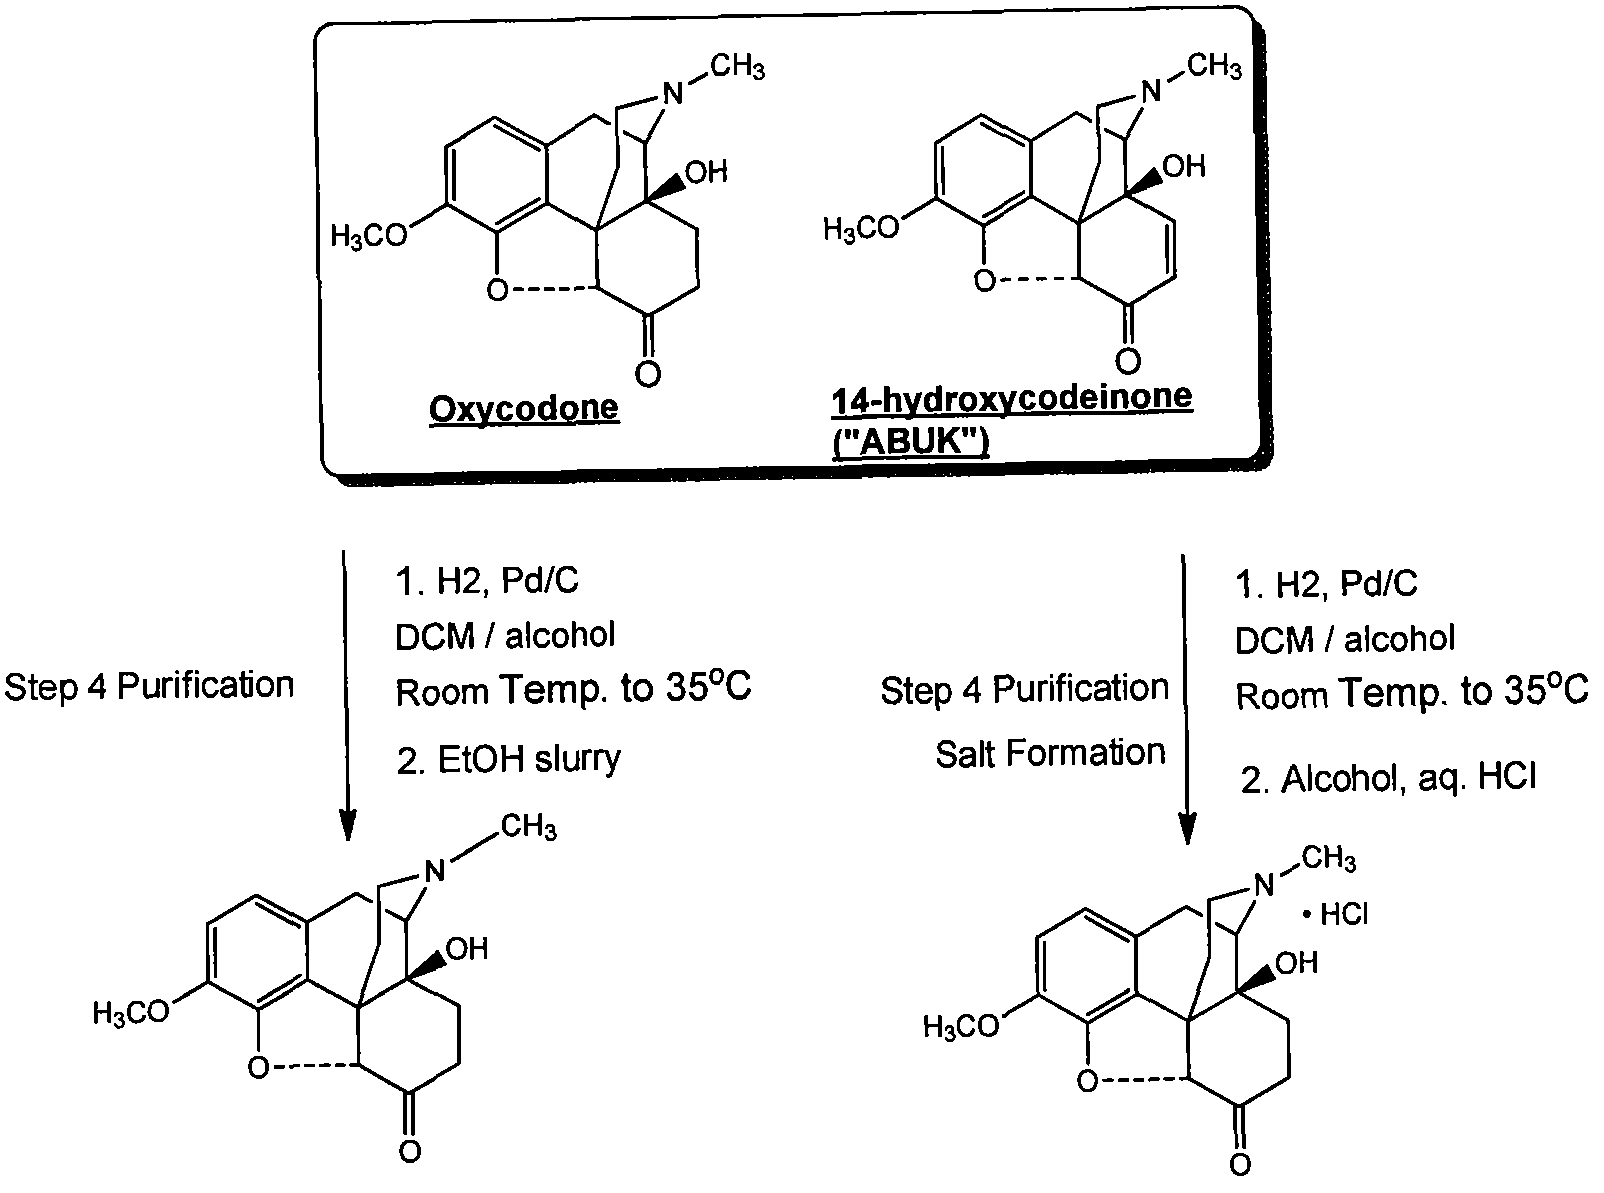 synthesising oxycodone